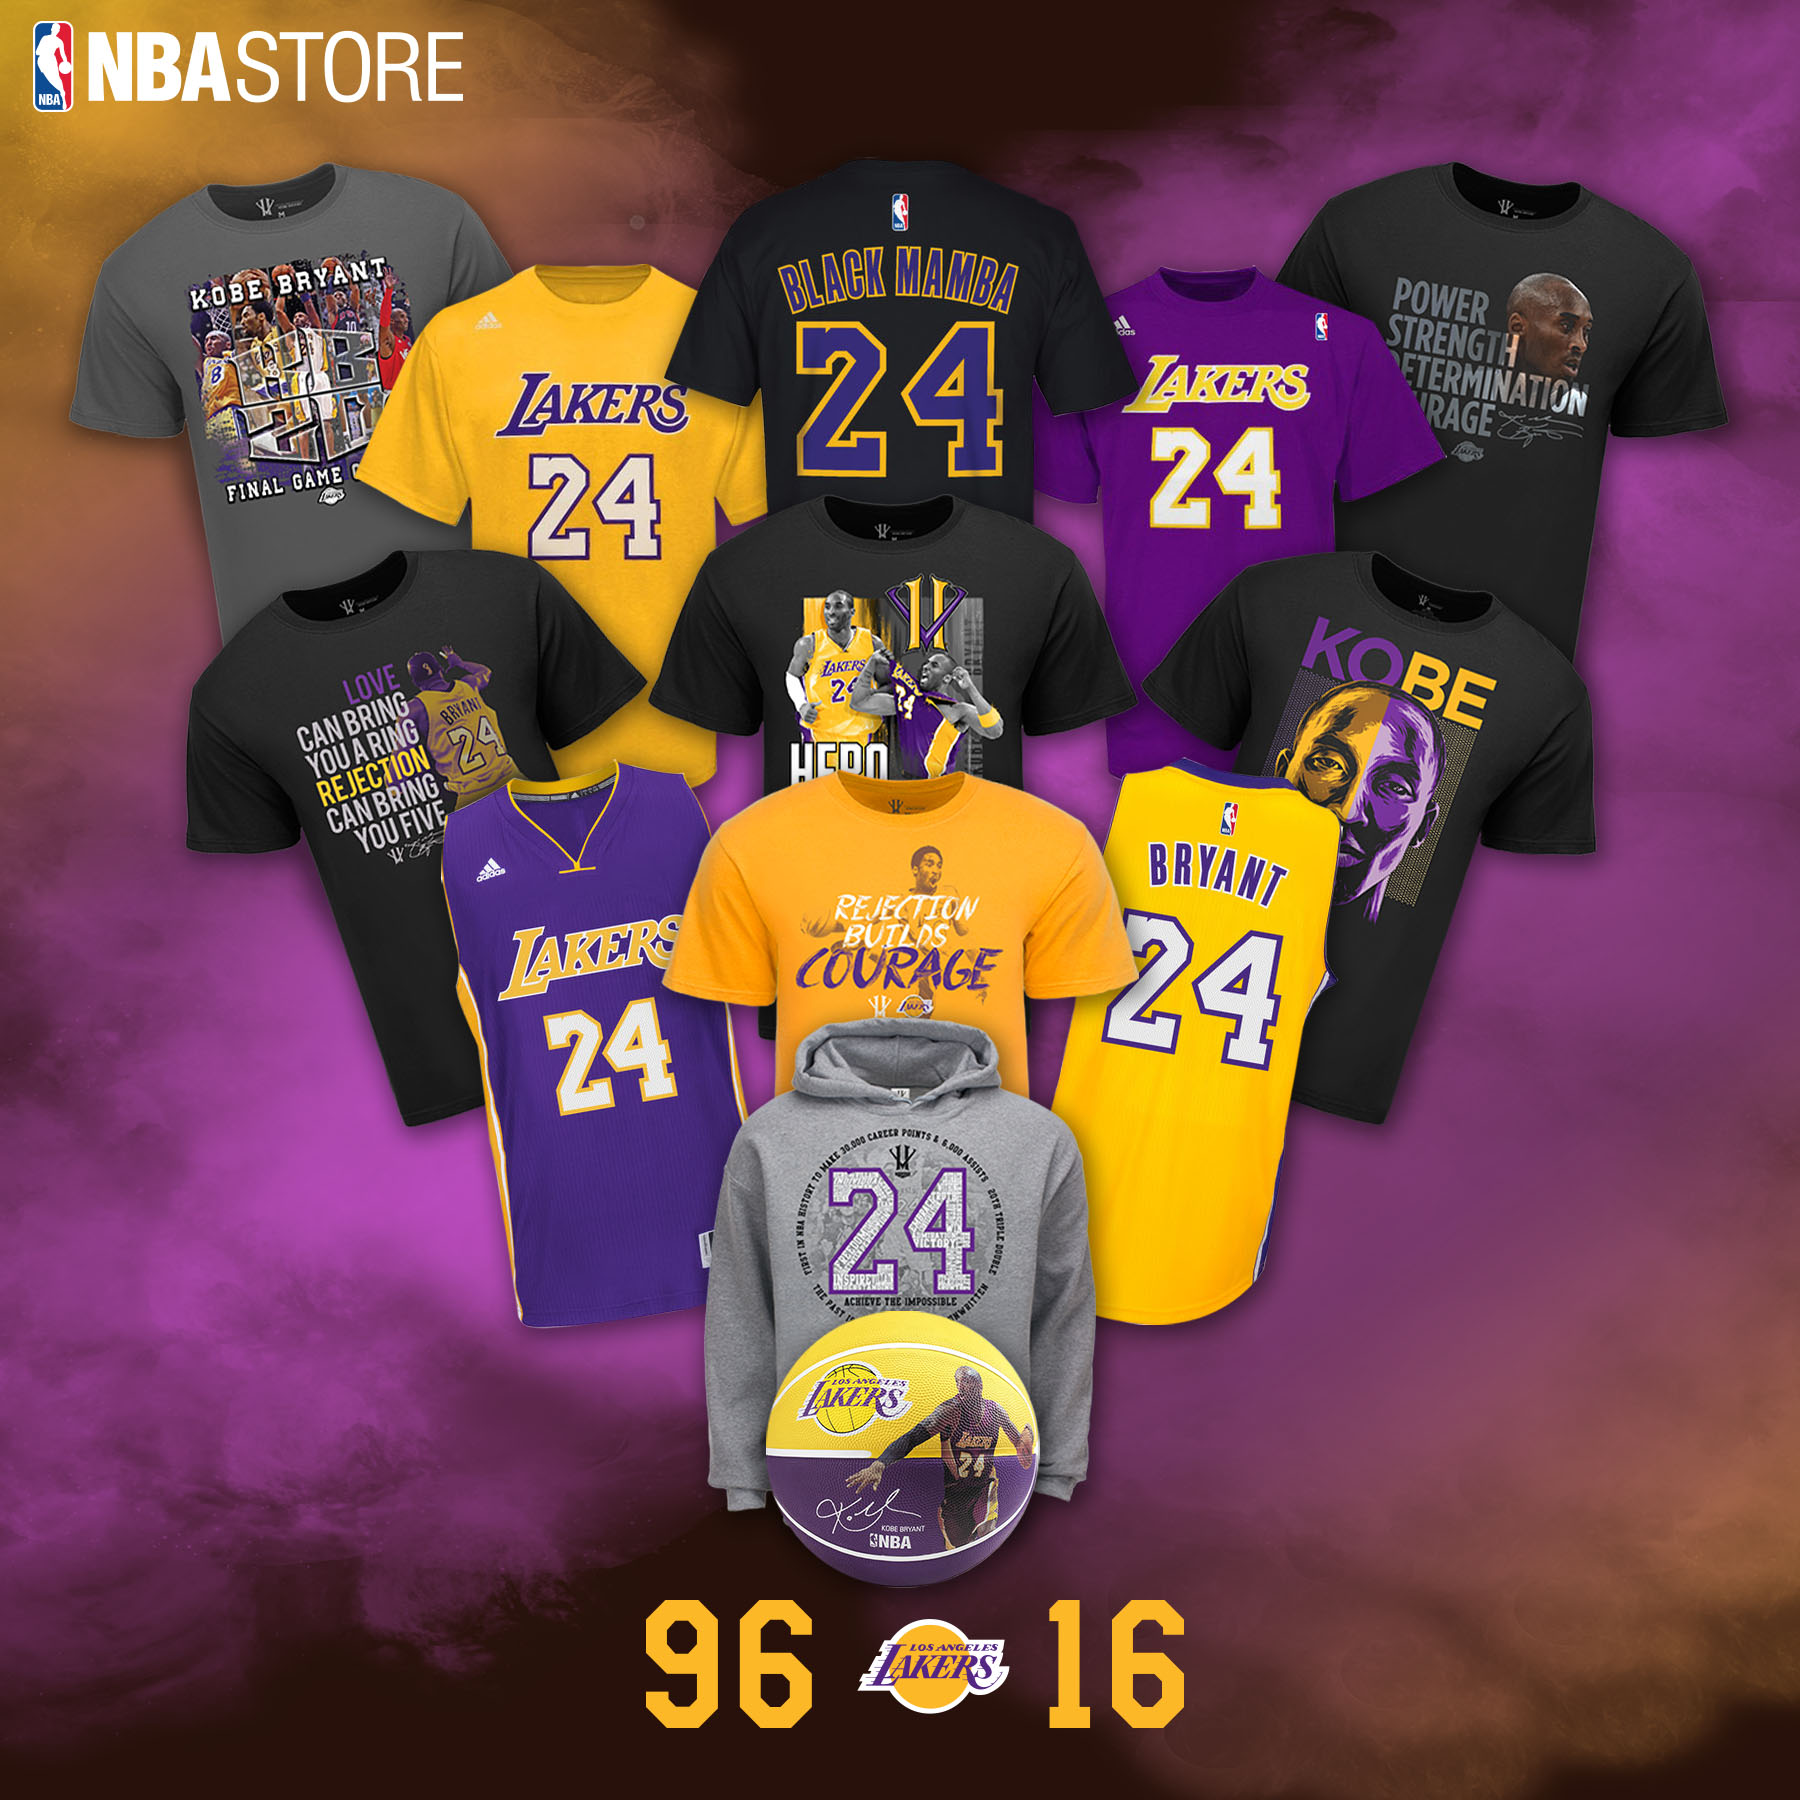 LOOK  New Kobe Bryant  KB20  merchandise available now at NBA Store ... 9e00b863c781